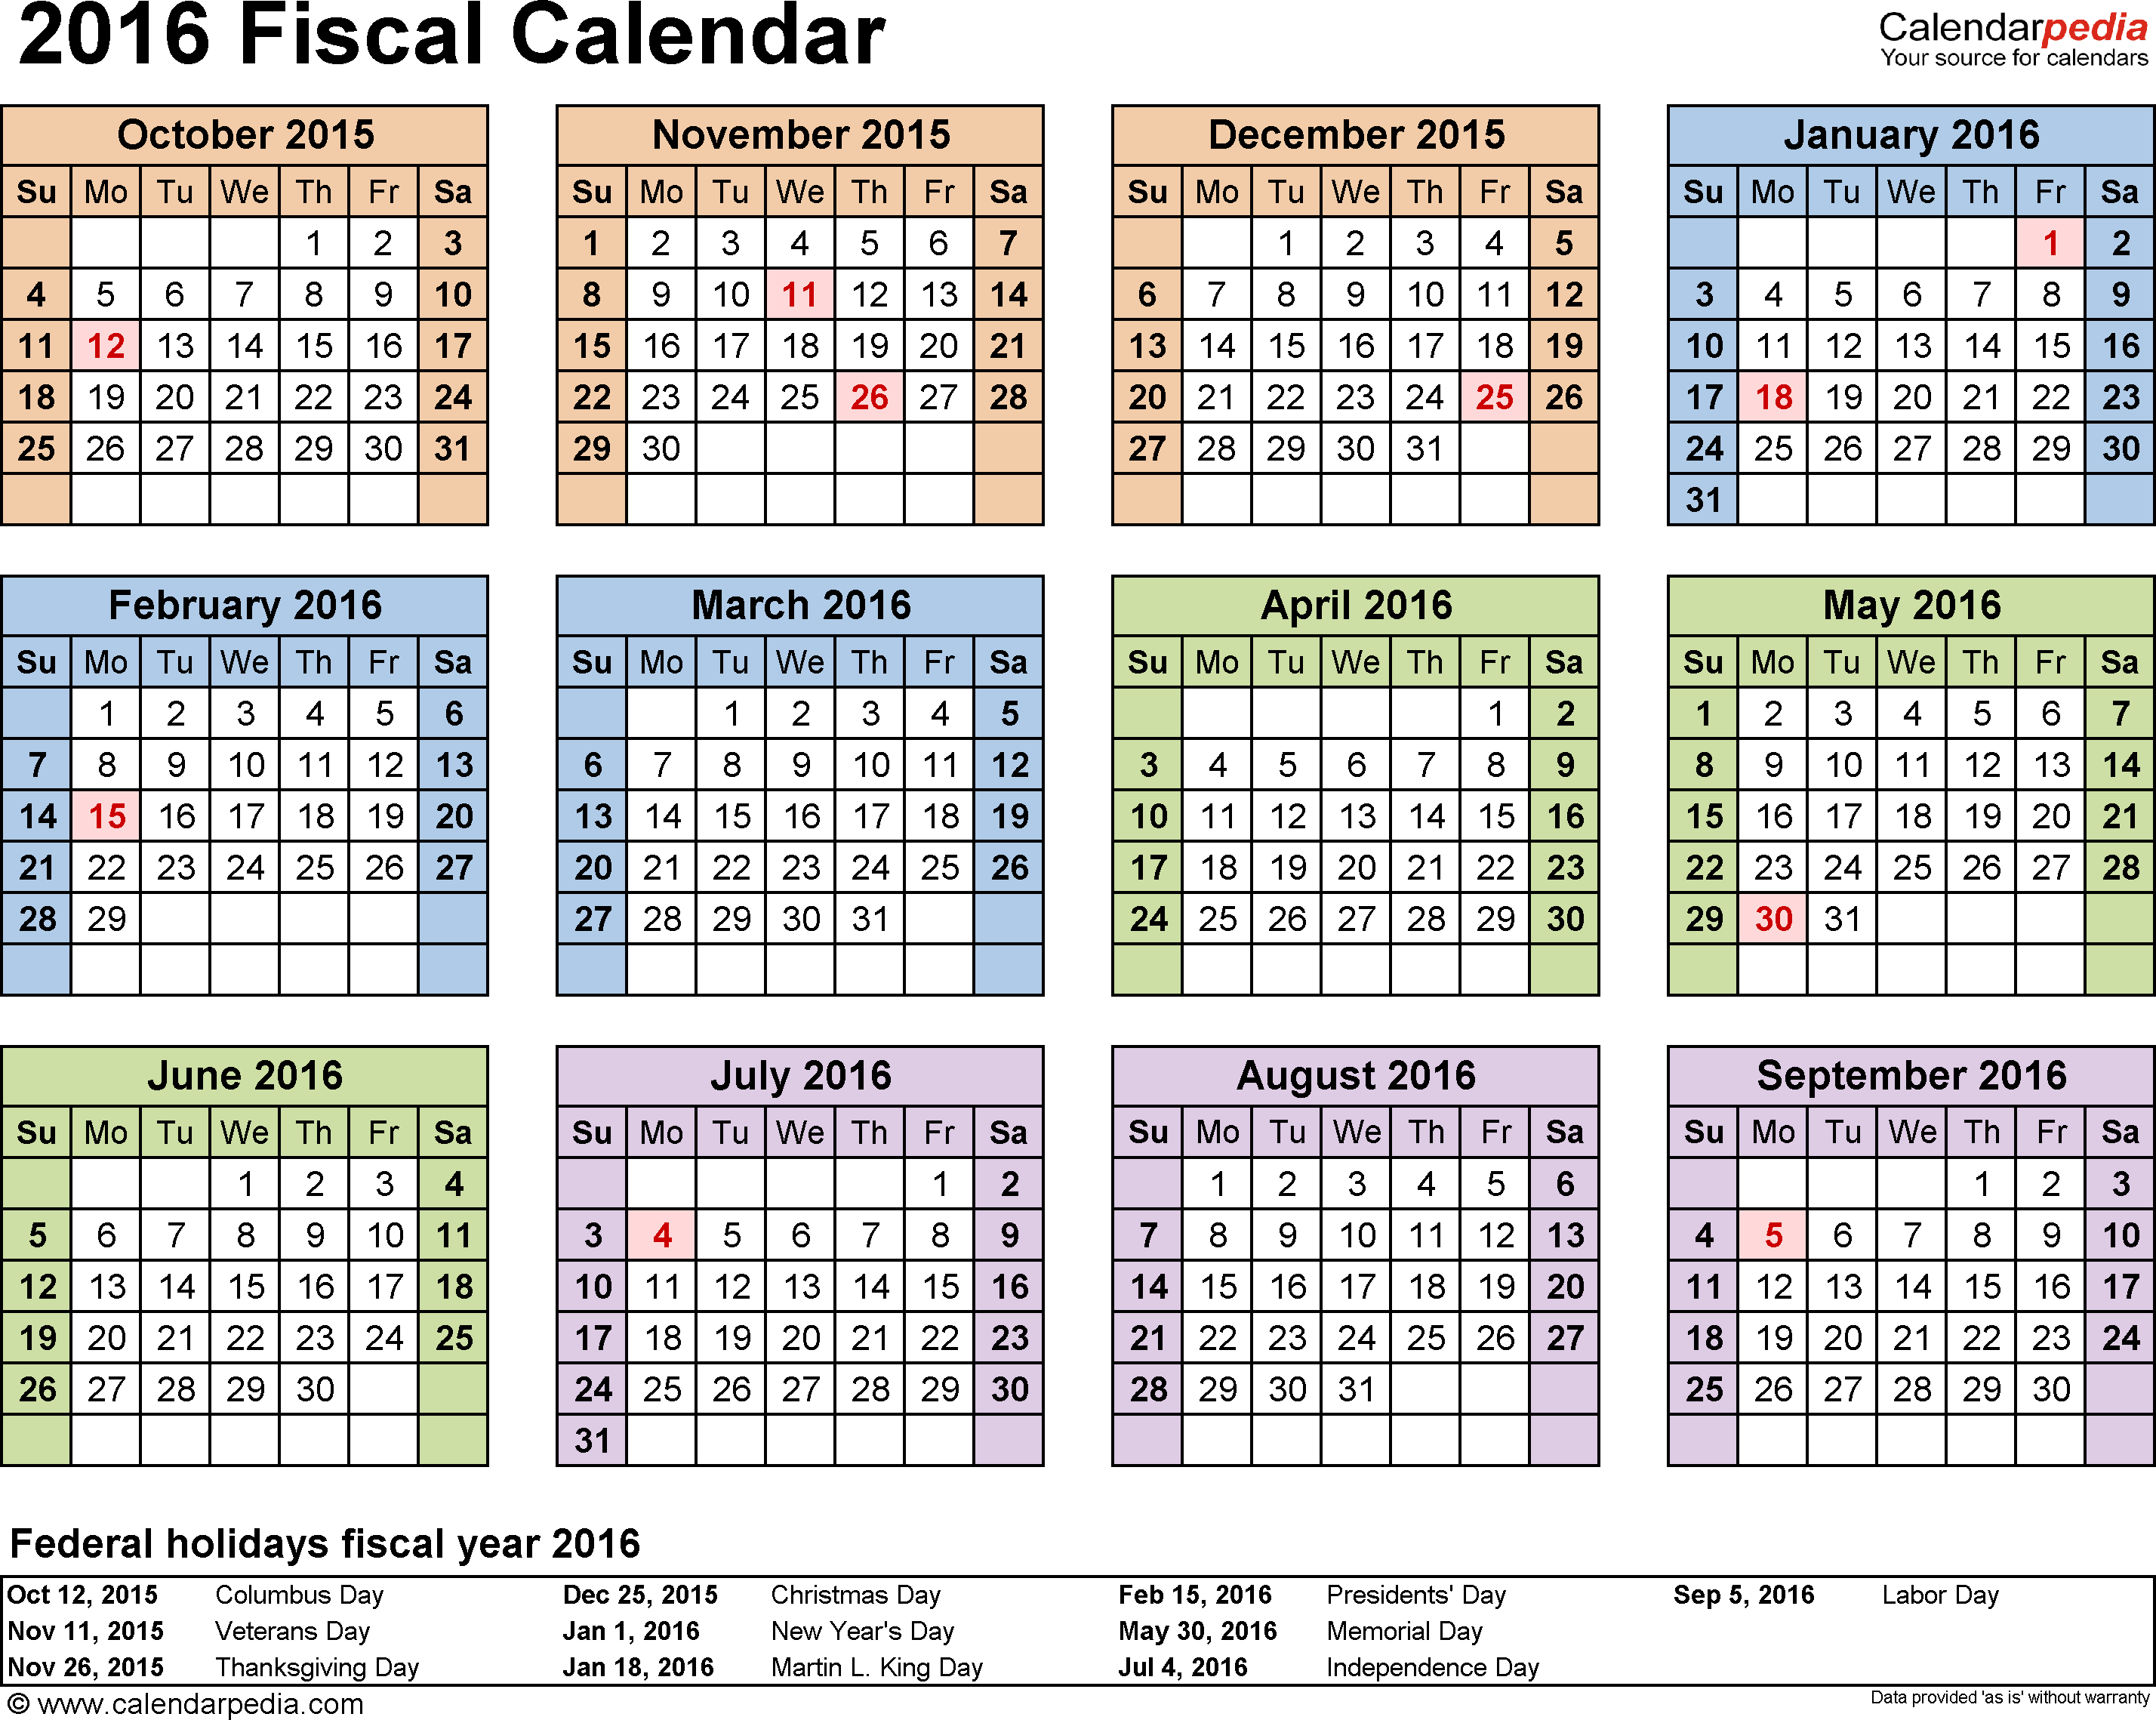 Template 4: Fiscal year calendar 2016 for Excel, landscape orientation, year at a glance, 1 page